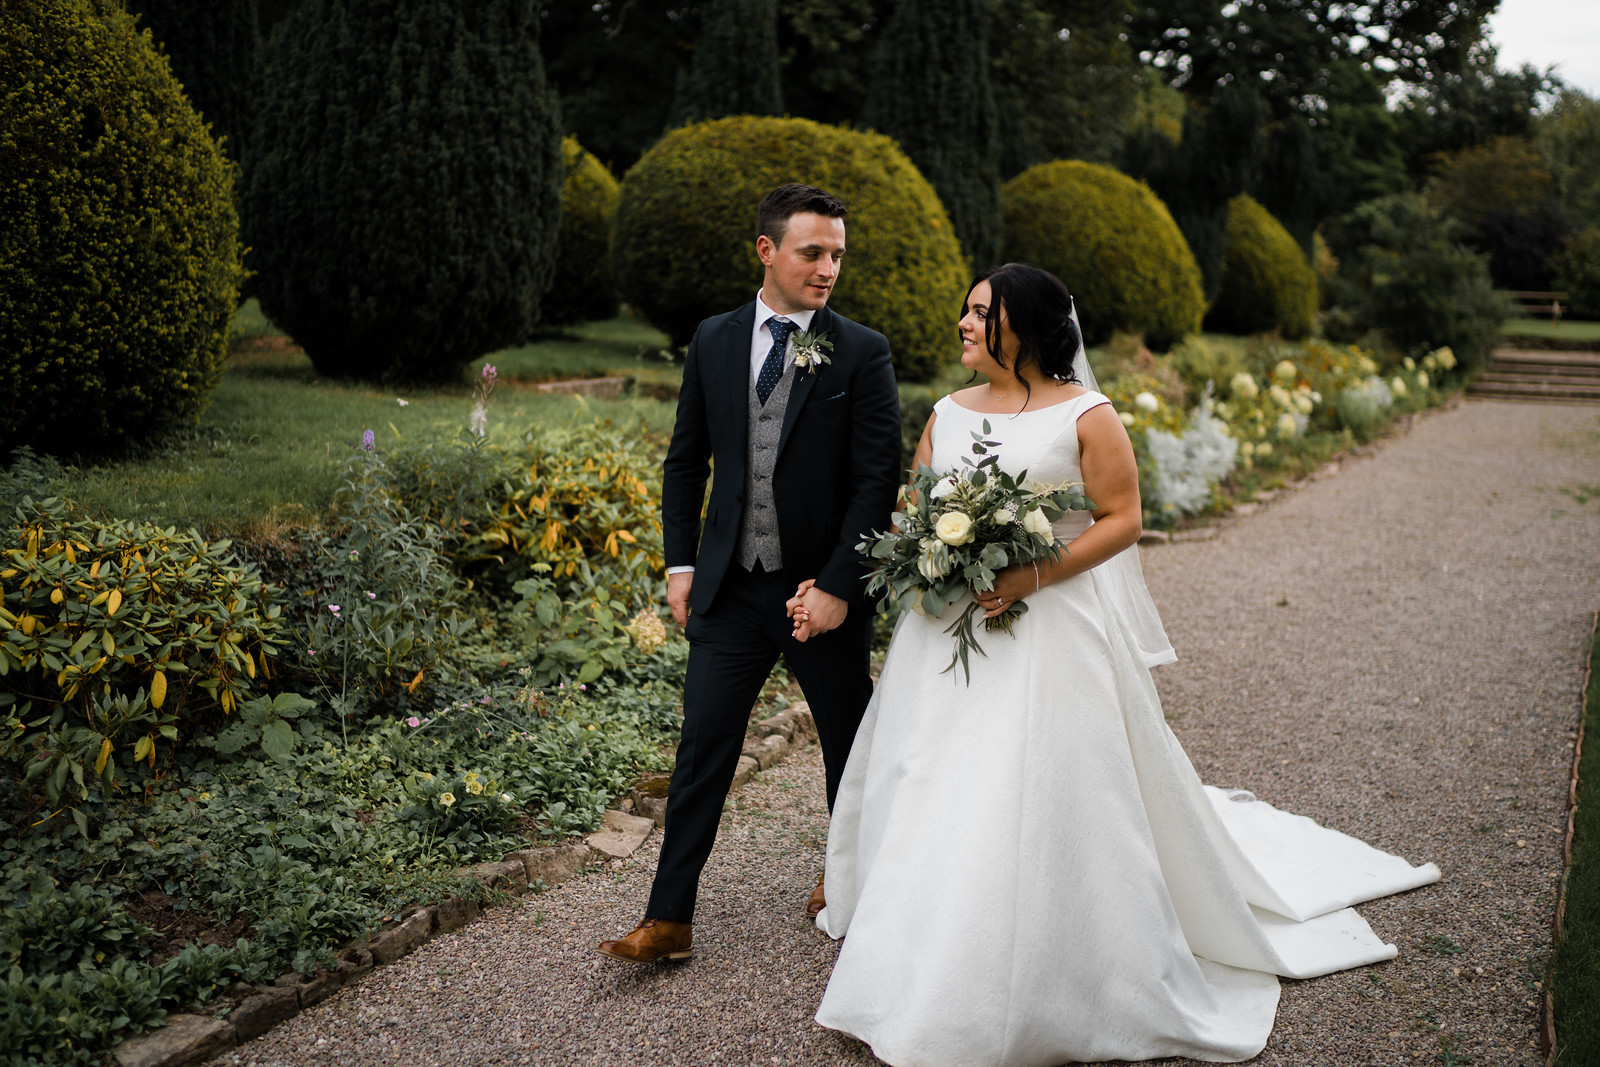 Bride and groom wedding photo - South Wales Wedding Photography